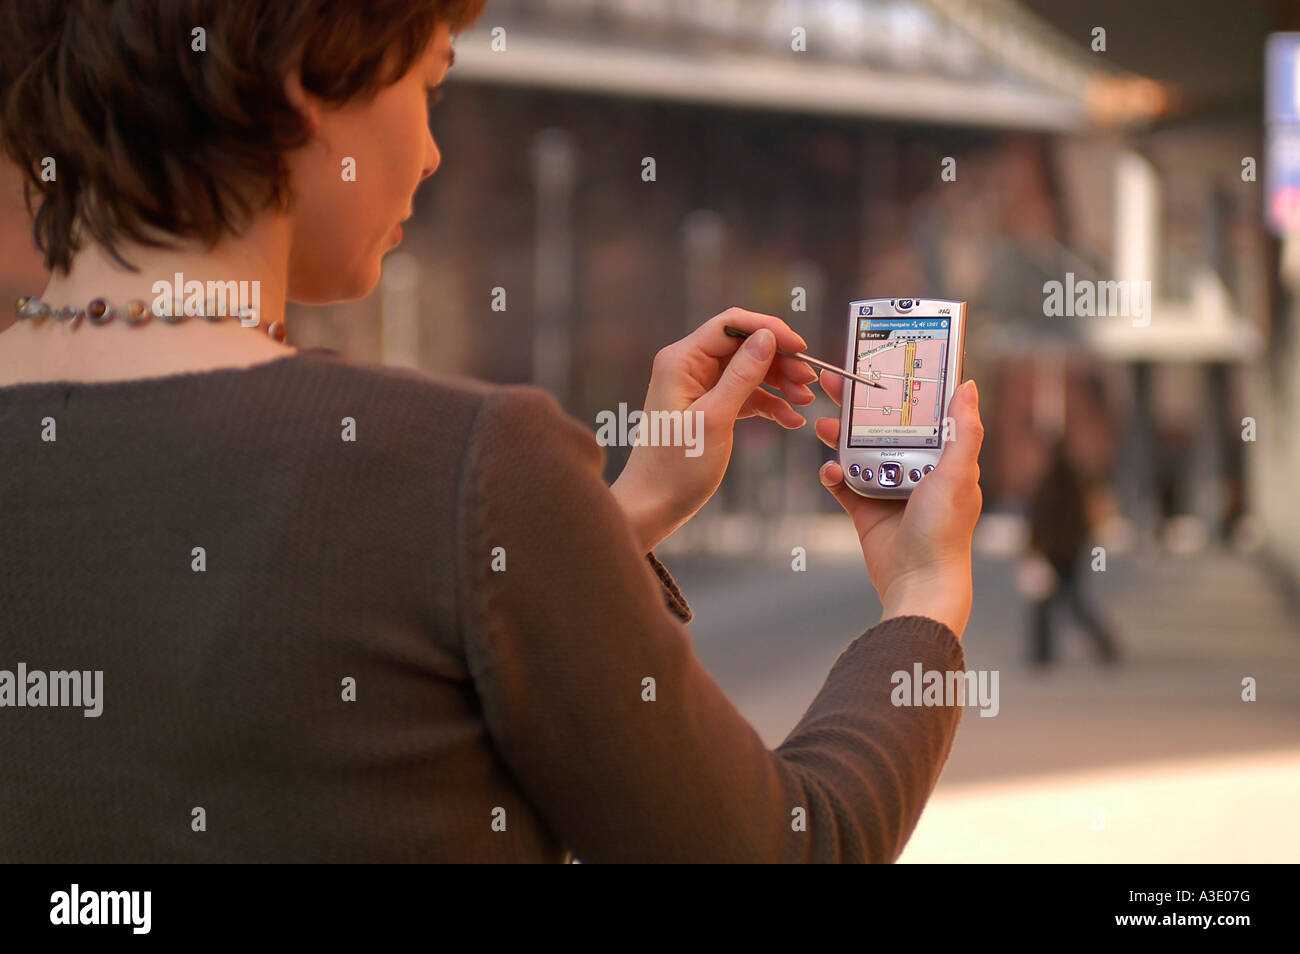 Pedestrian with navigation system - Stock Image